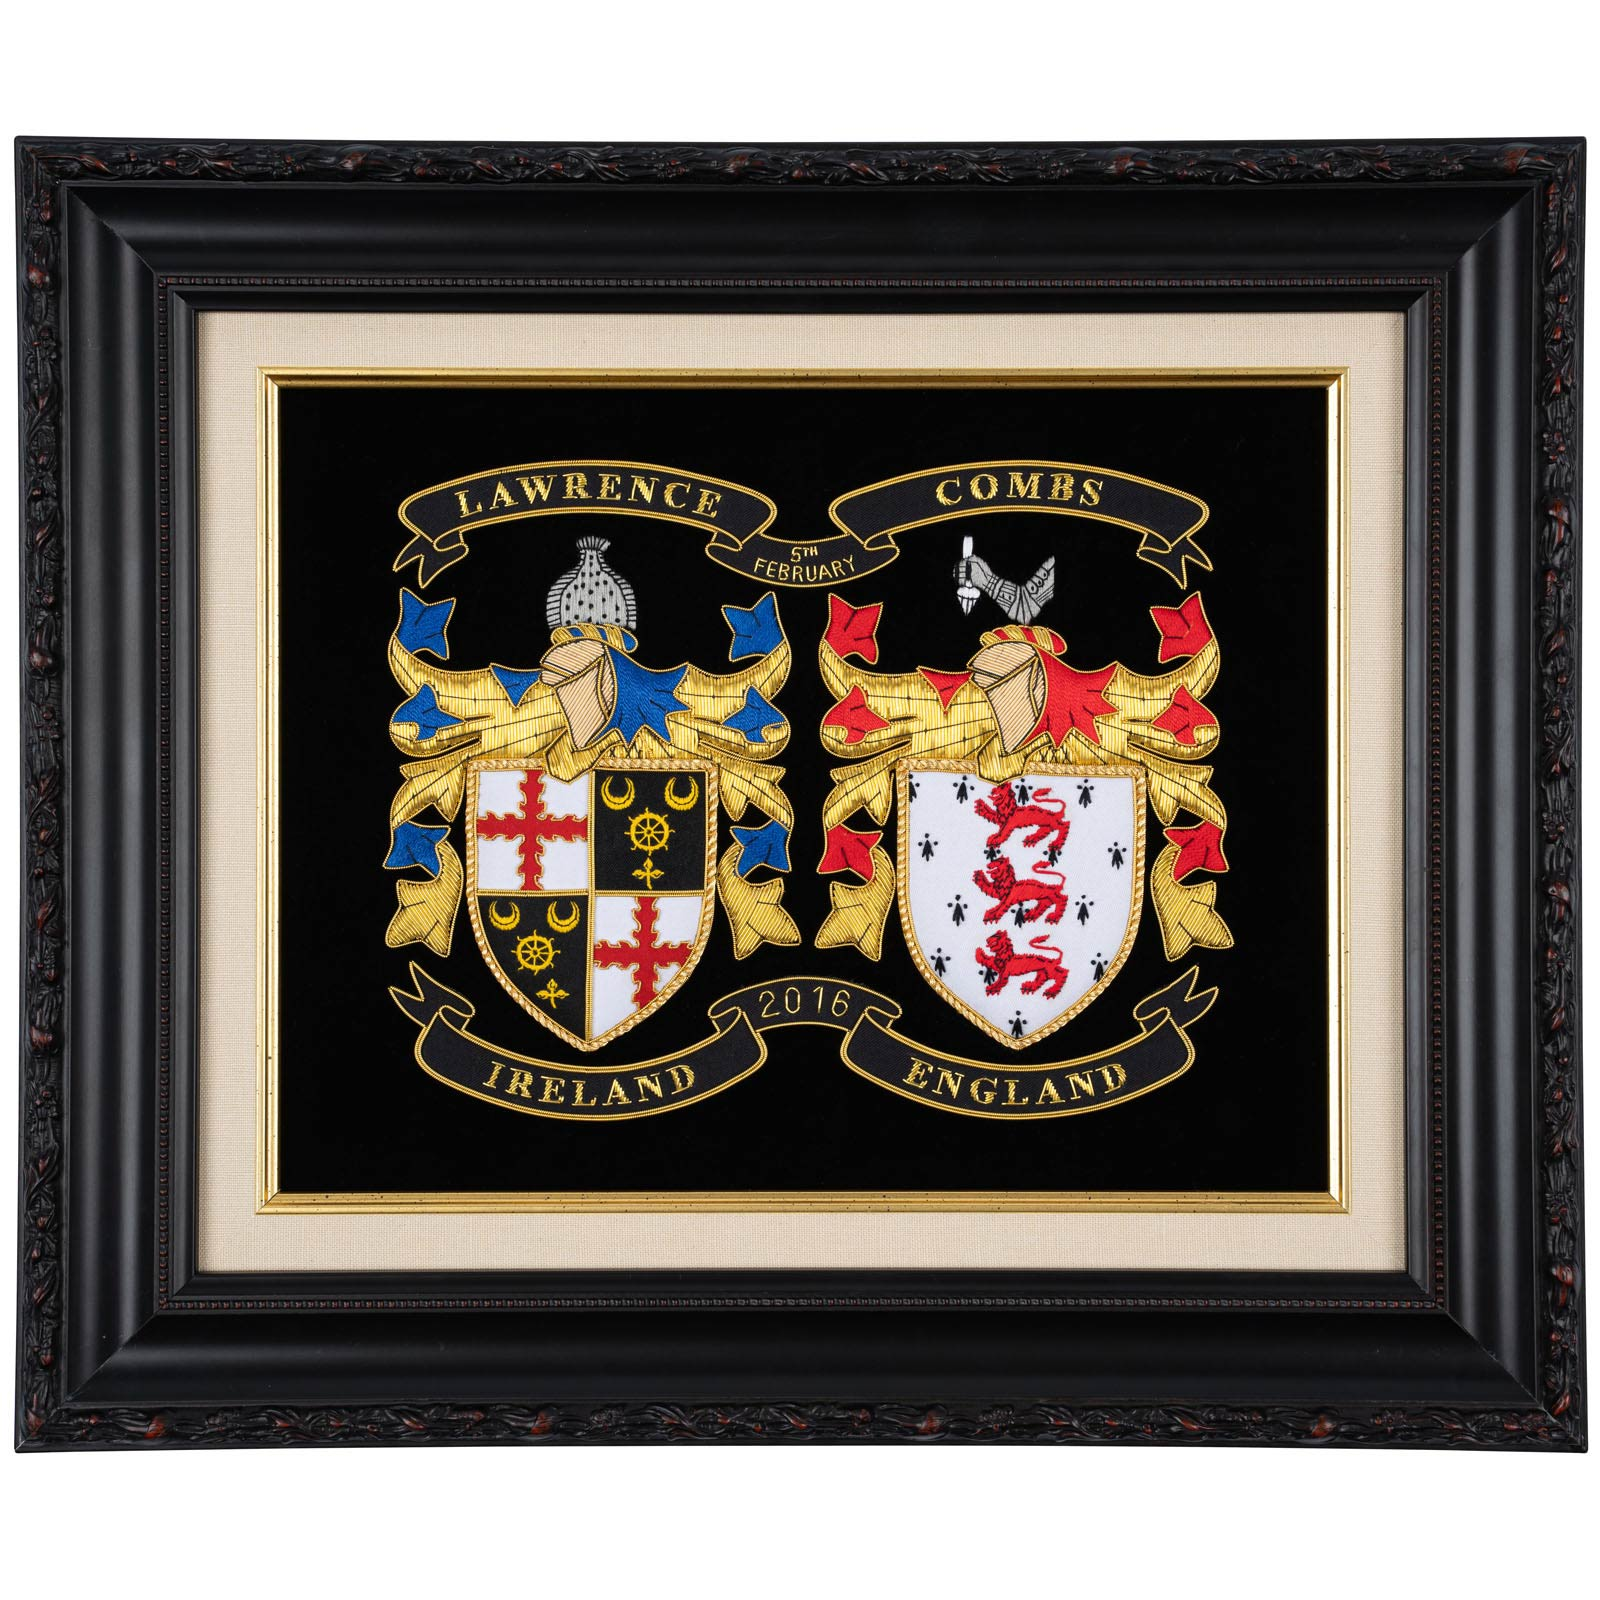 Embroidered Coat of Arms co-joining two families